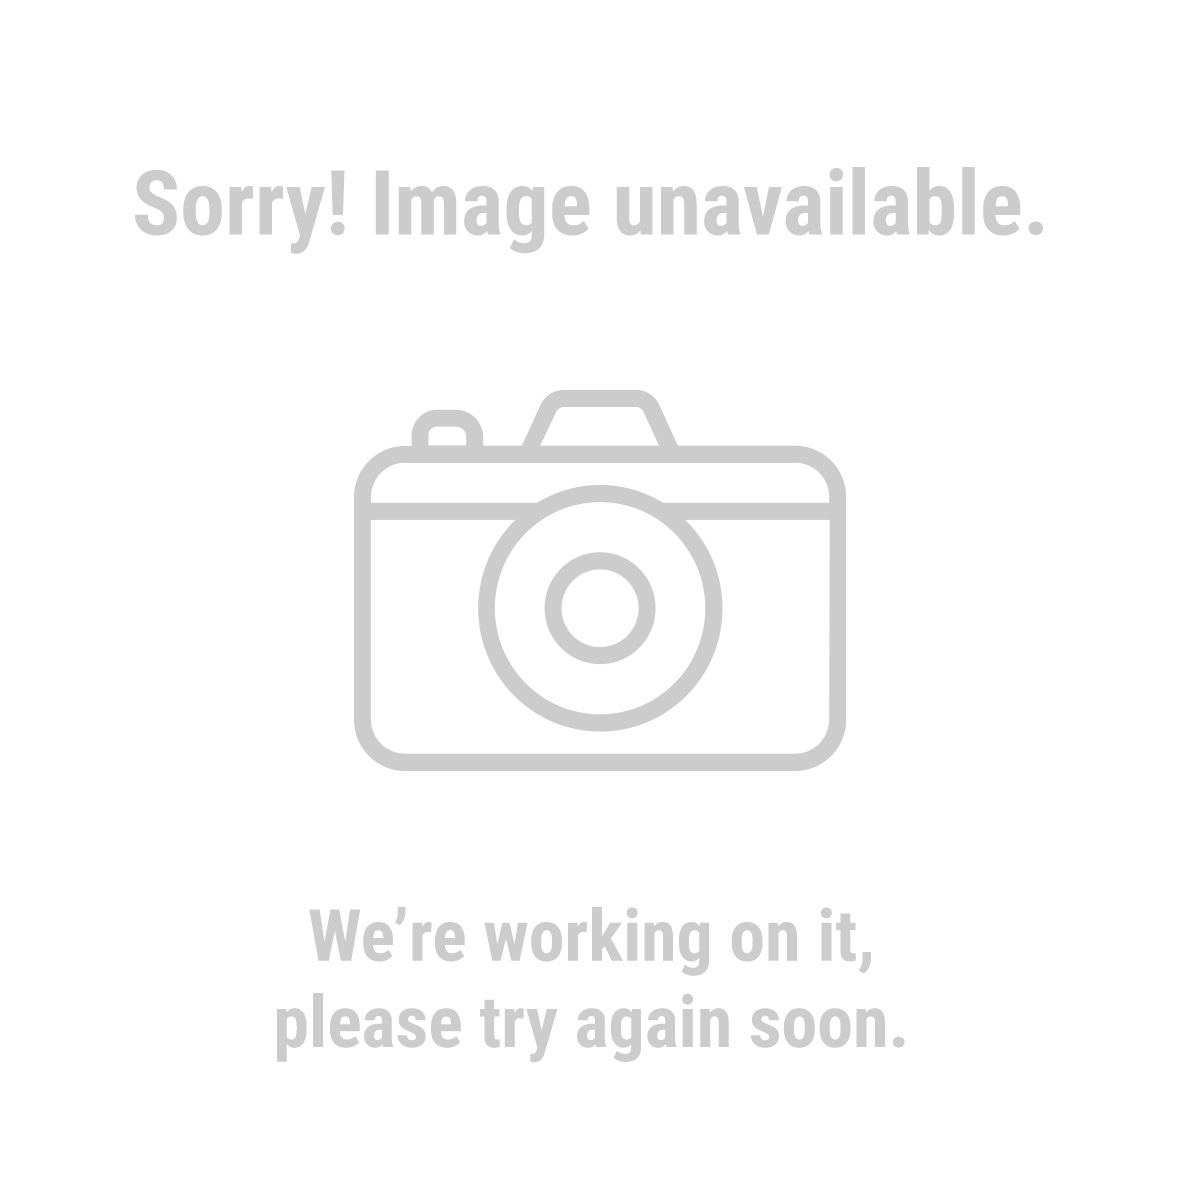 HARDY 40533 Industrial Plumber's Gloves